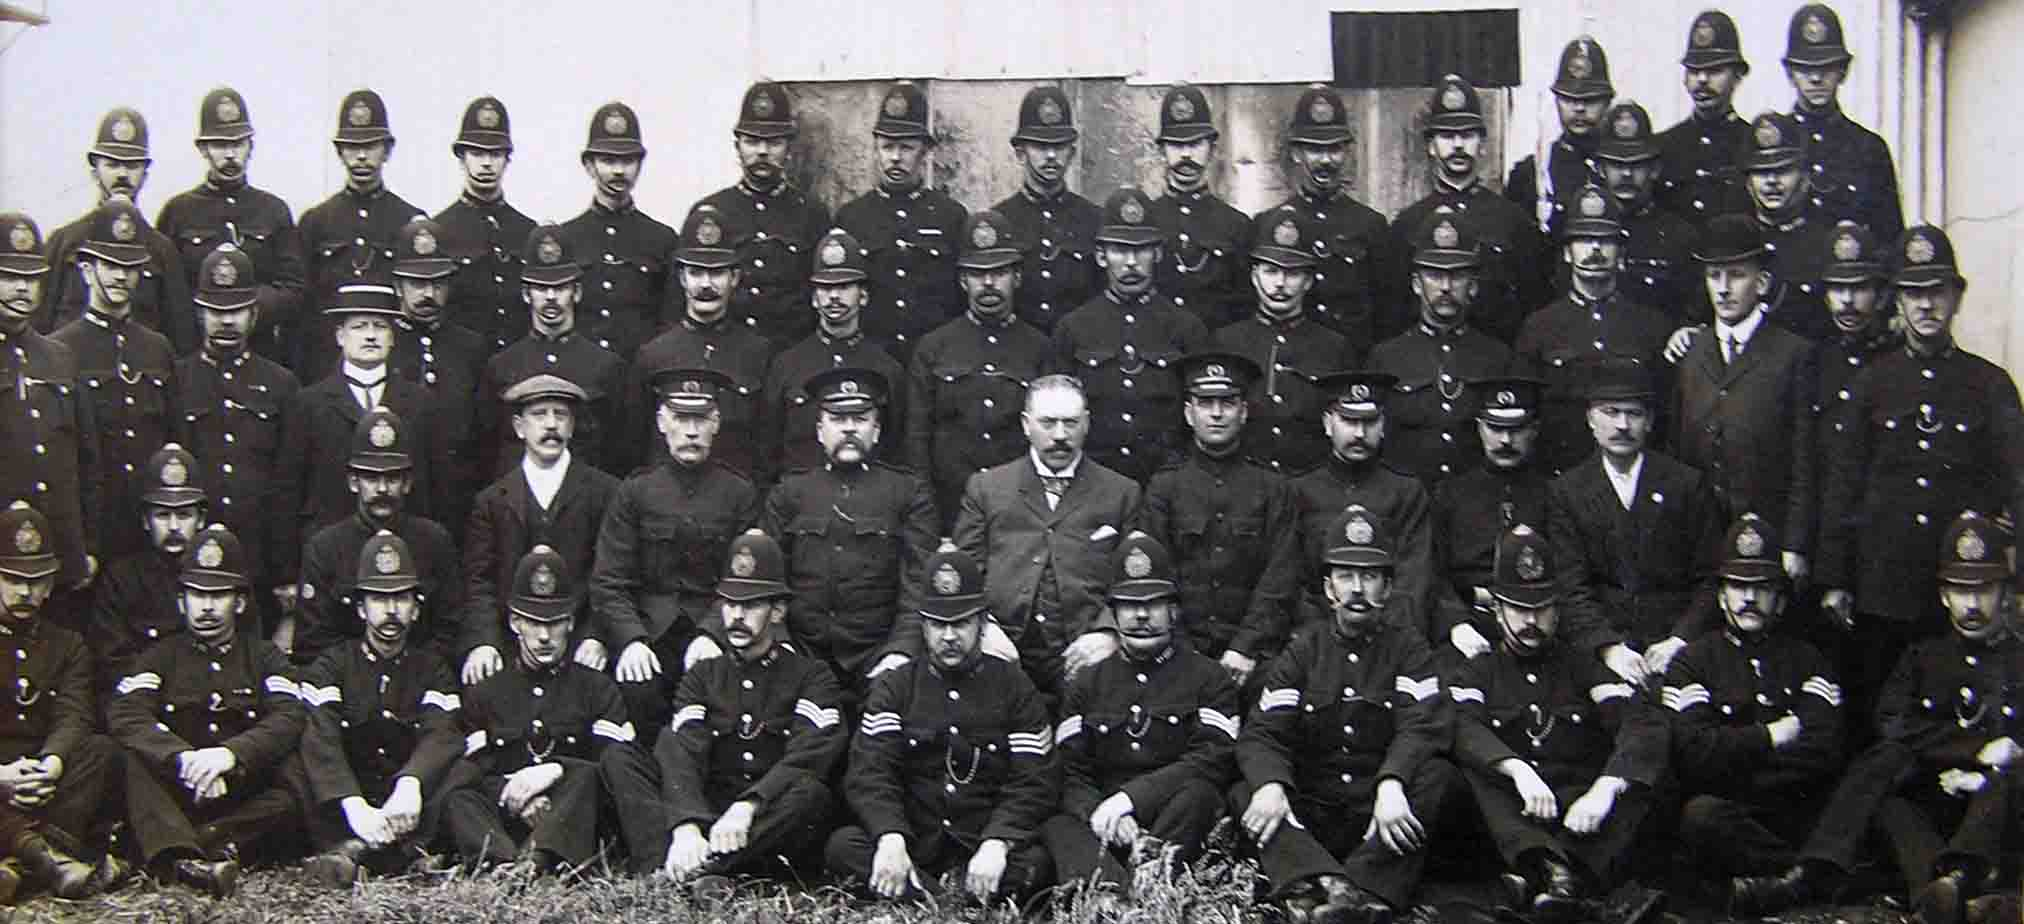 history of police The garda síochána historical society is a non-profit organisation aiming to bring the rich history and traditions of irish policing (especially the history of the garda síochána) into the public arena.